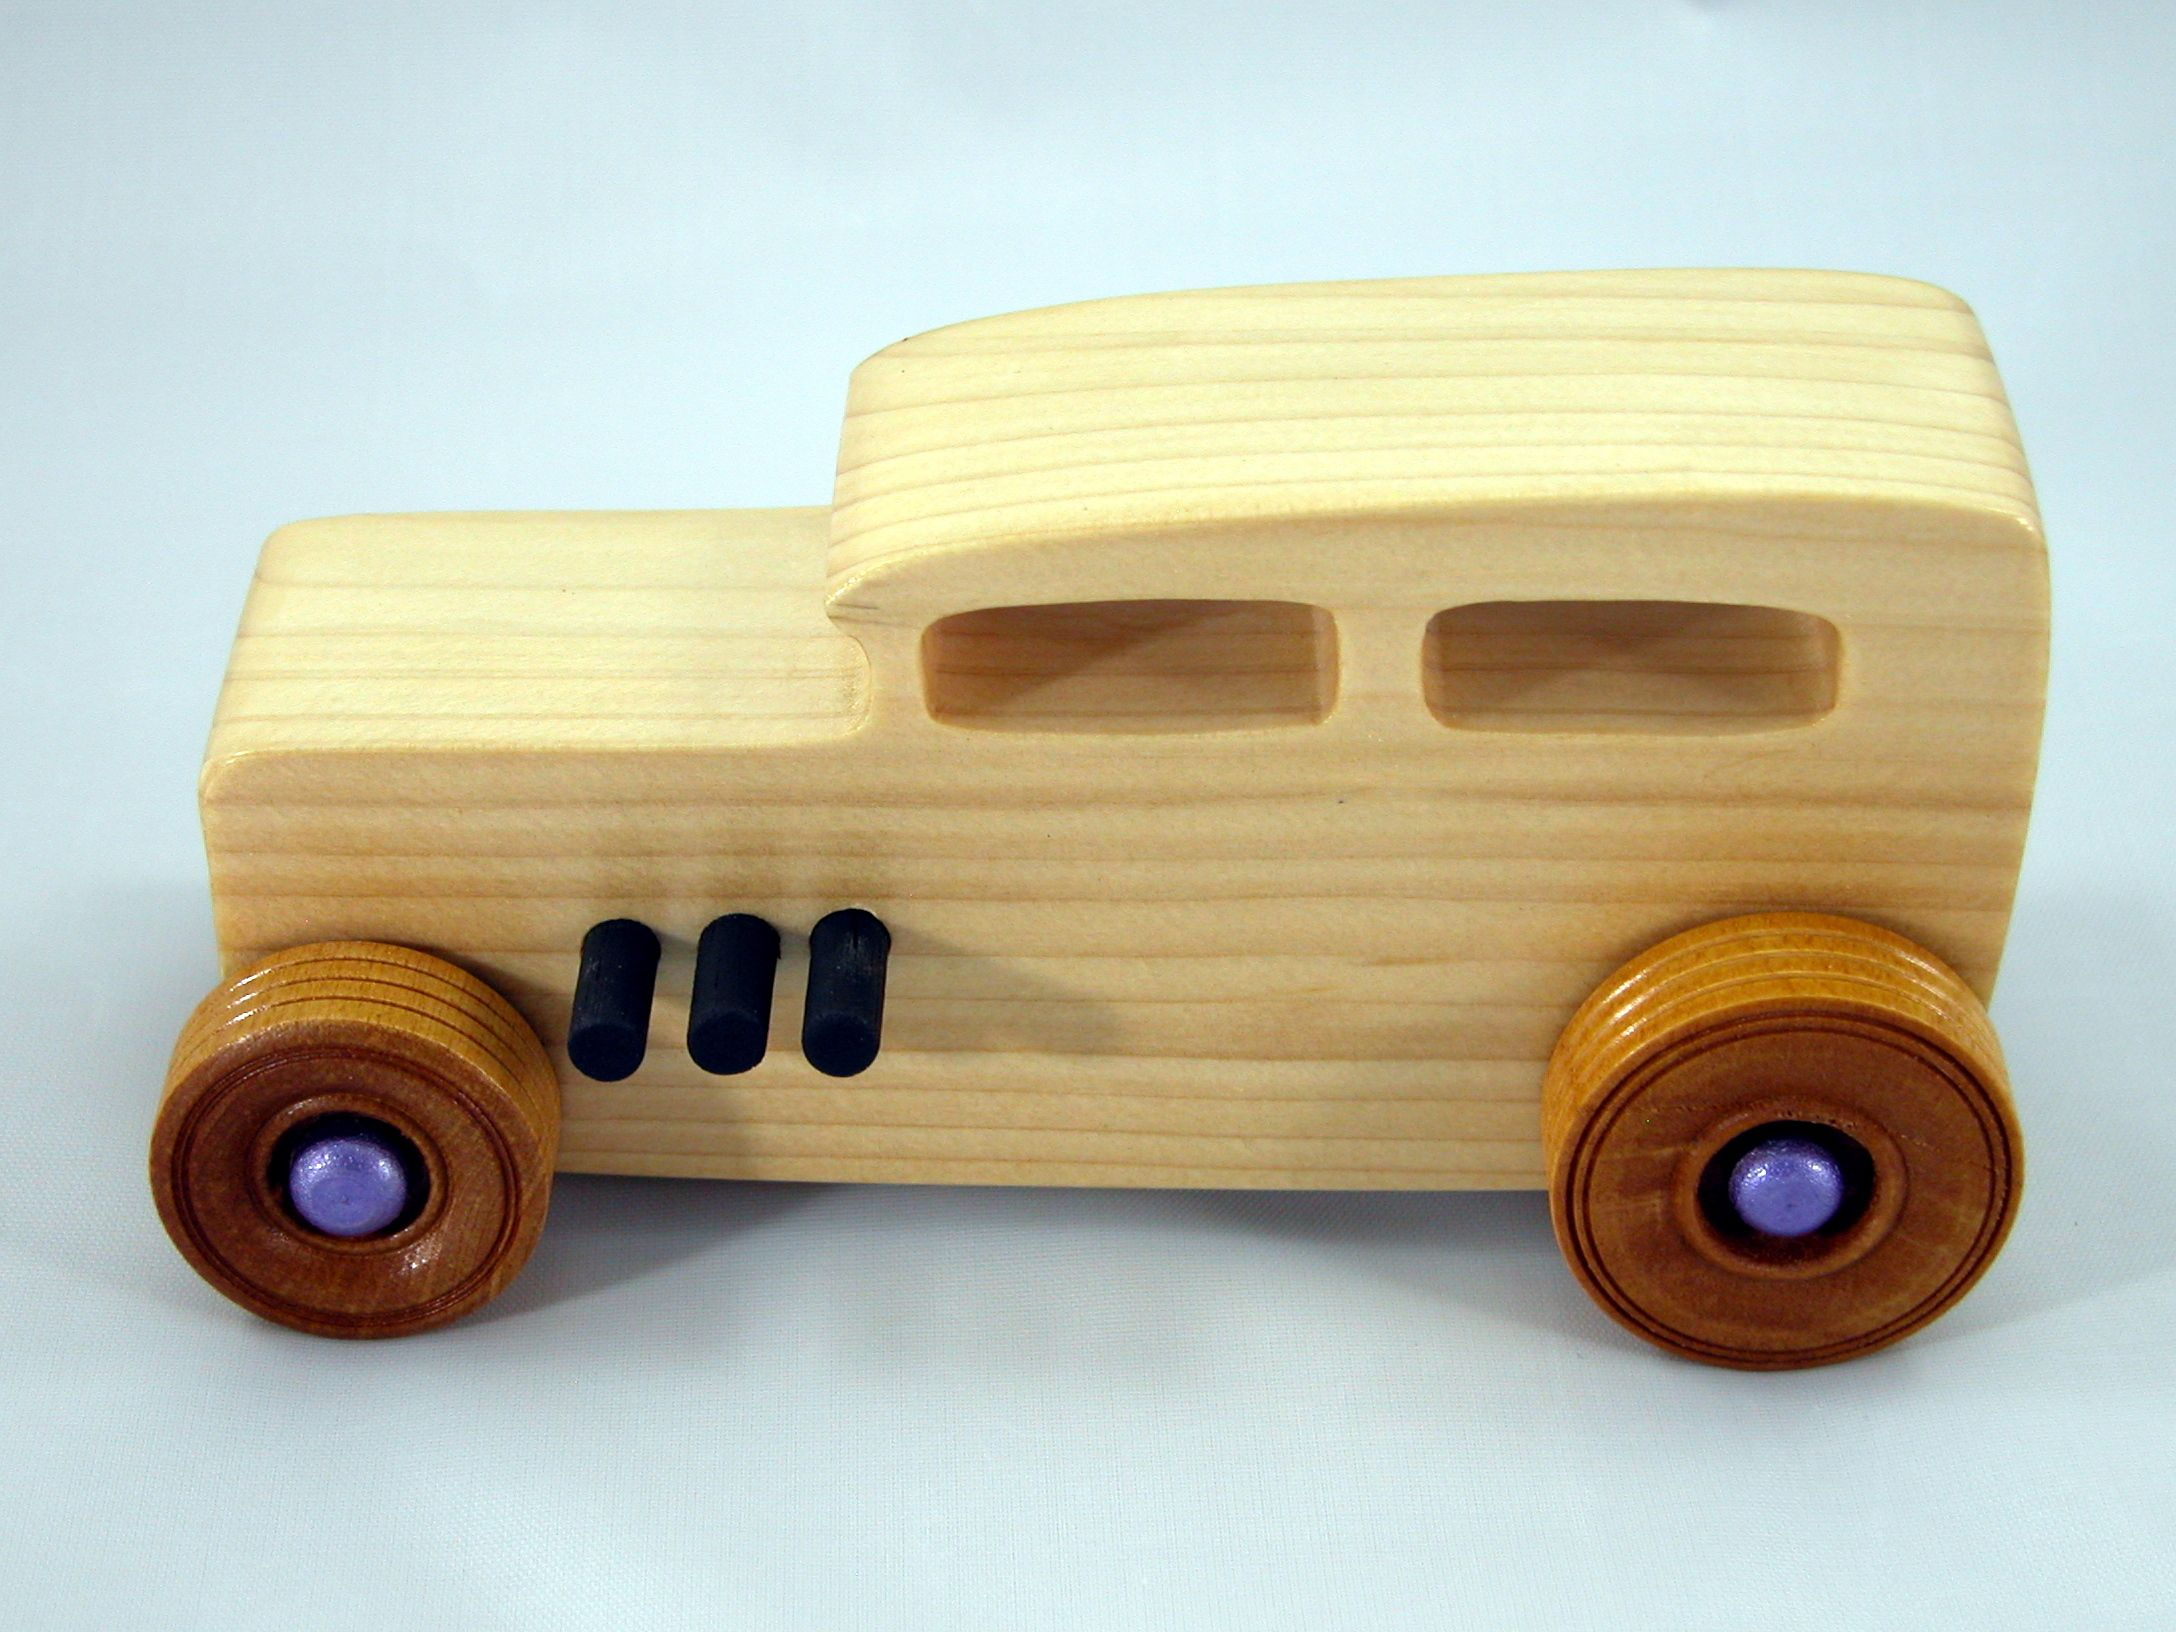 Toys images for boys  Handmade Handcrafted Wooden Toy Car Hot Rod Freaky Ford  Ford